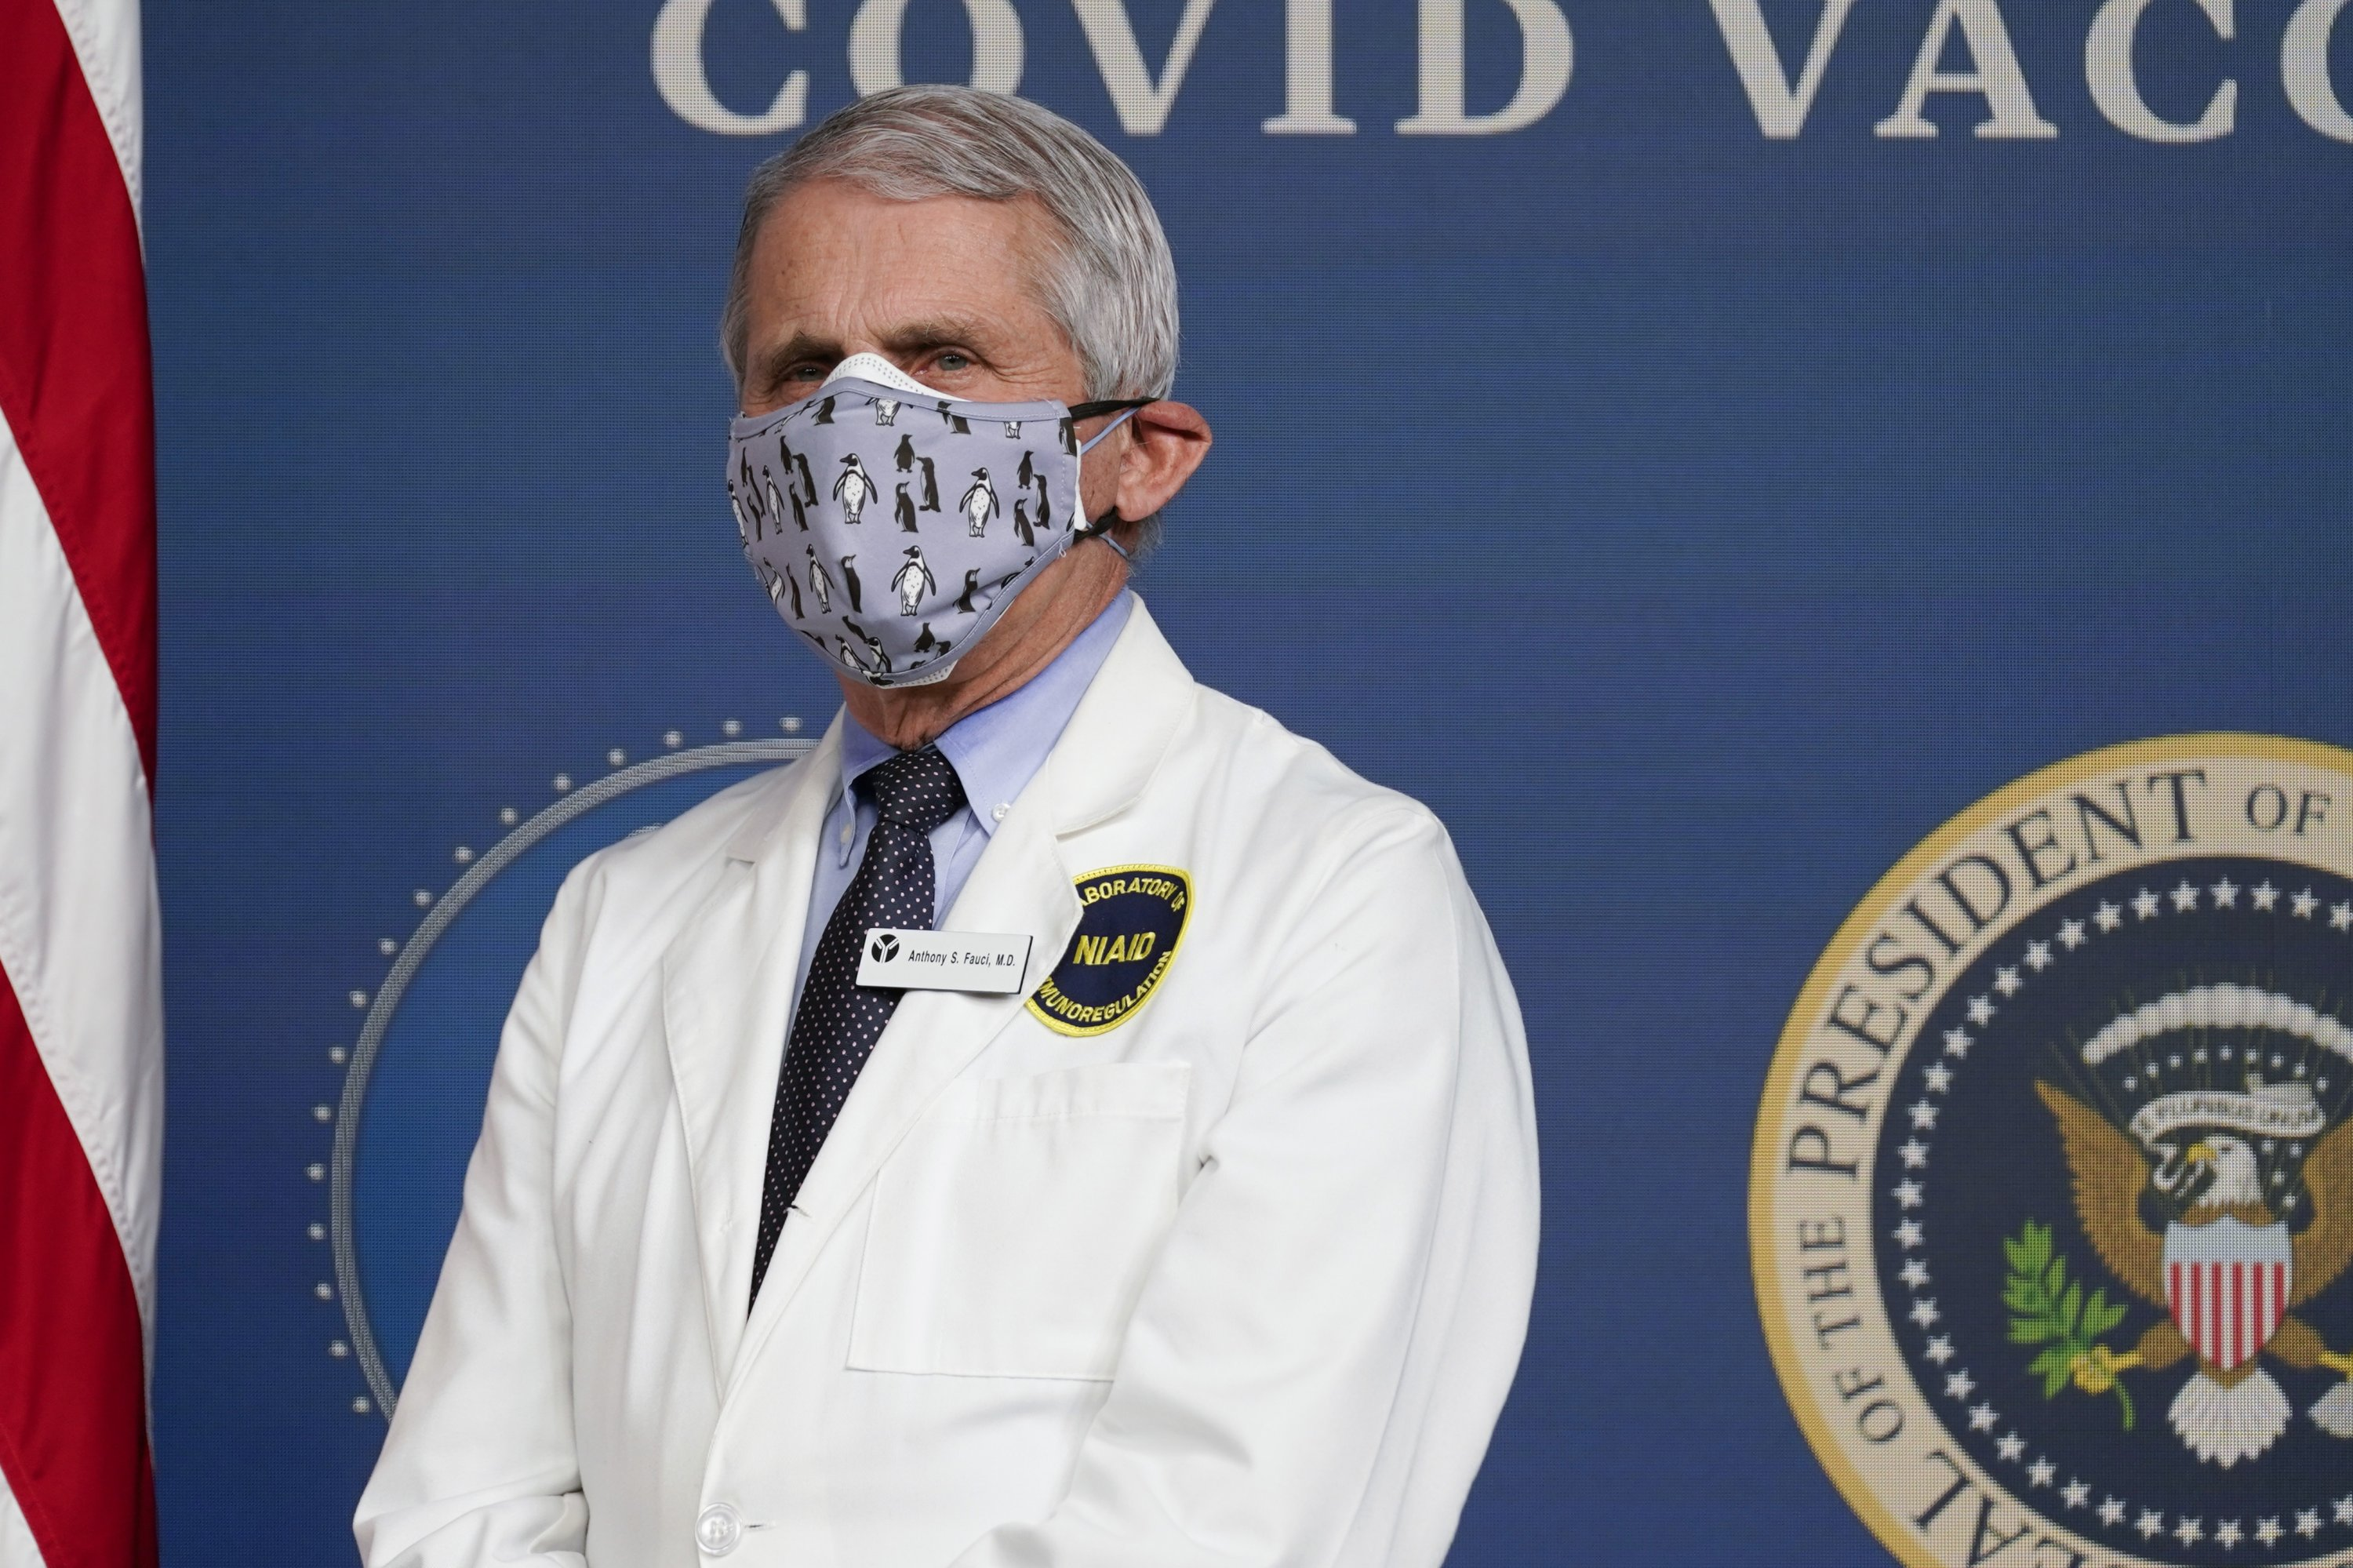 Dr. Anthony Fauci, director of the National Institute of Allergy and Infectious Diseases, listens as U.S. President Joe Biden speaks during an event to commemorate the 50 millionth COVID-19 shot in Washington, U.S., Feb. 25, 2021. (AP Photo)